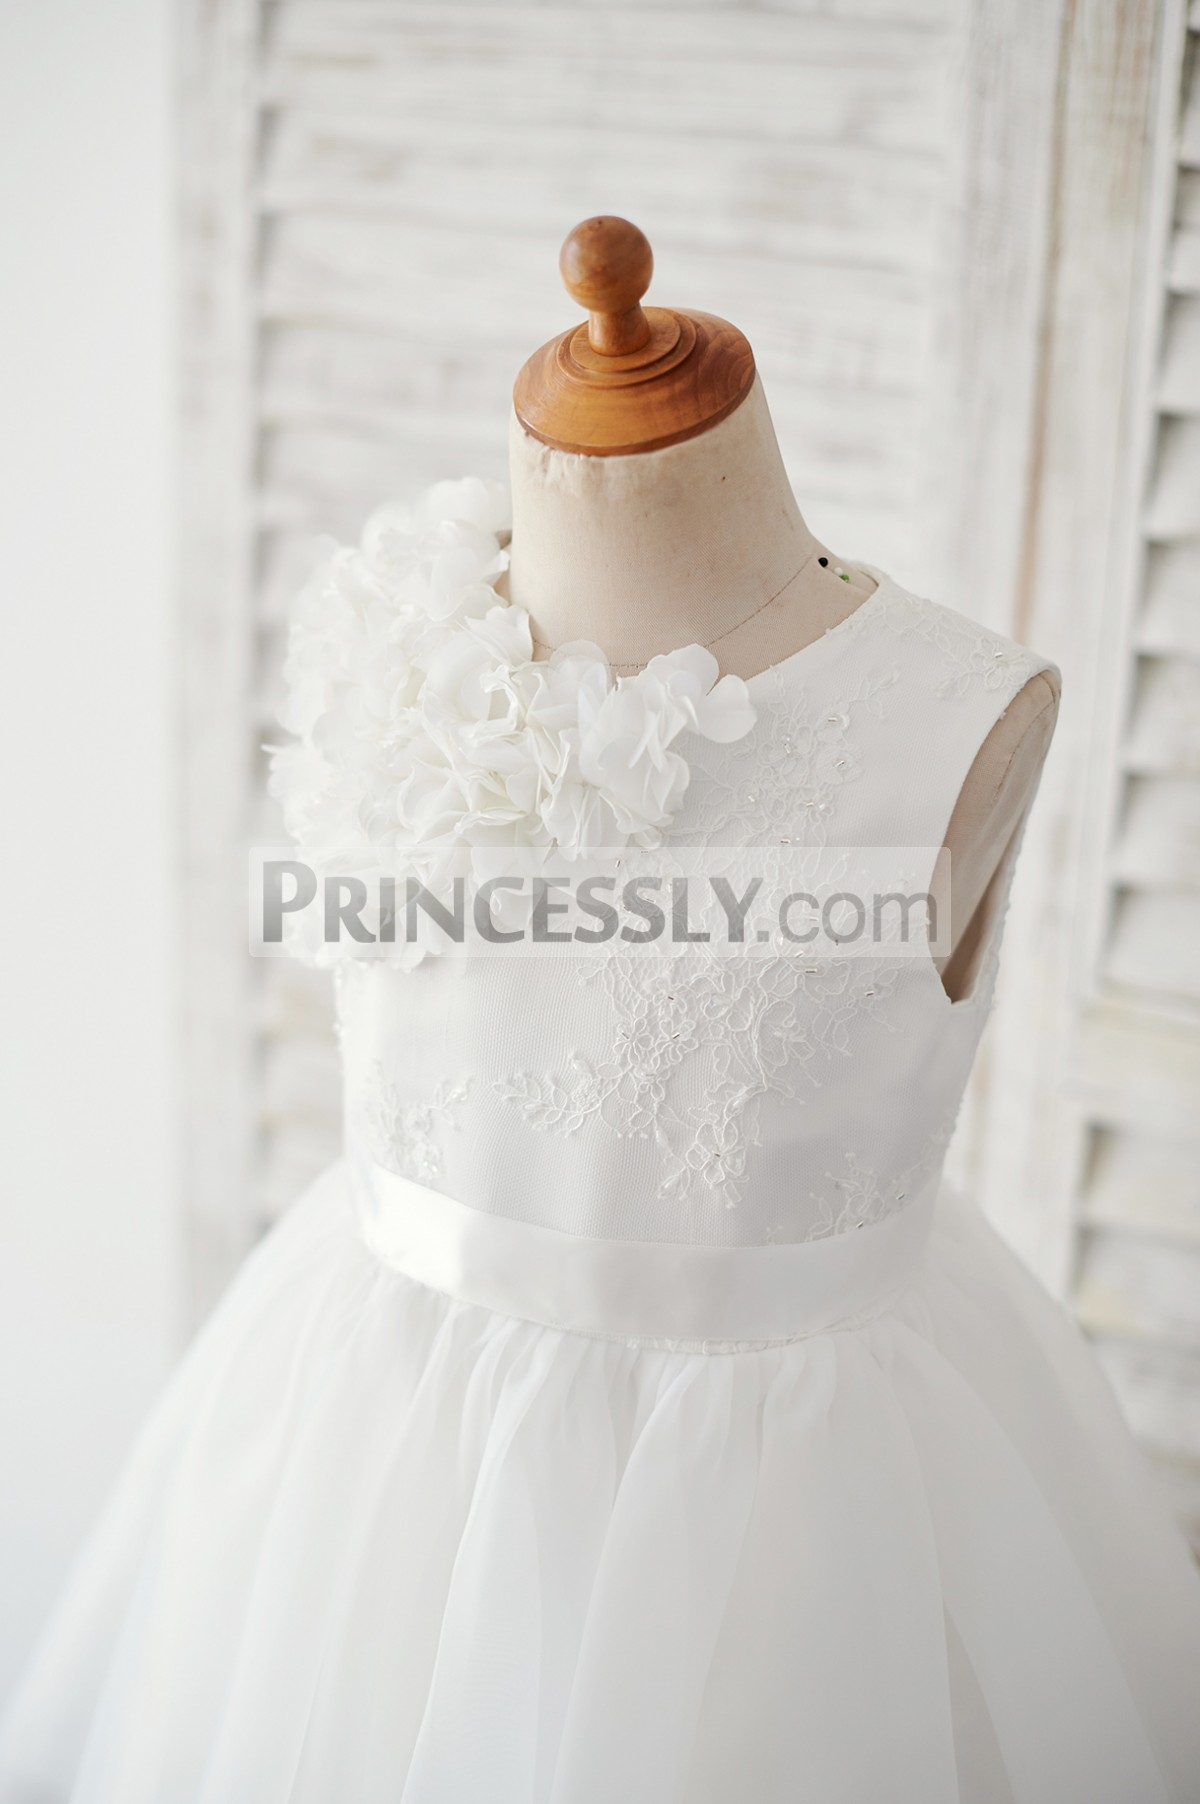 Ivory lace bodice with handmade flowers & belt